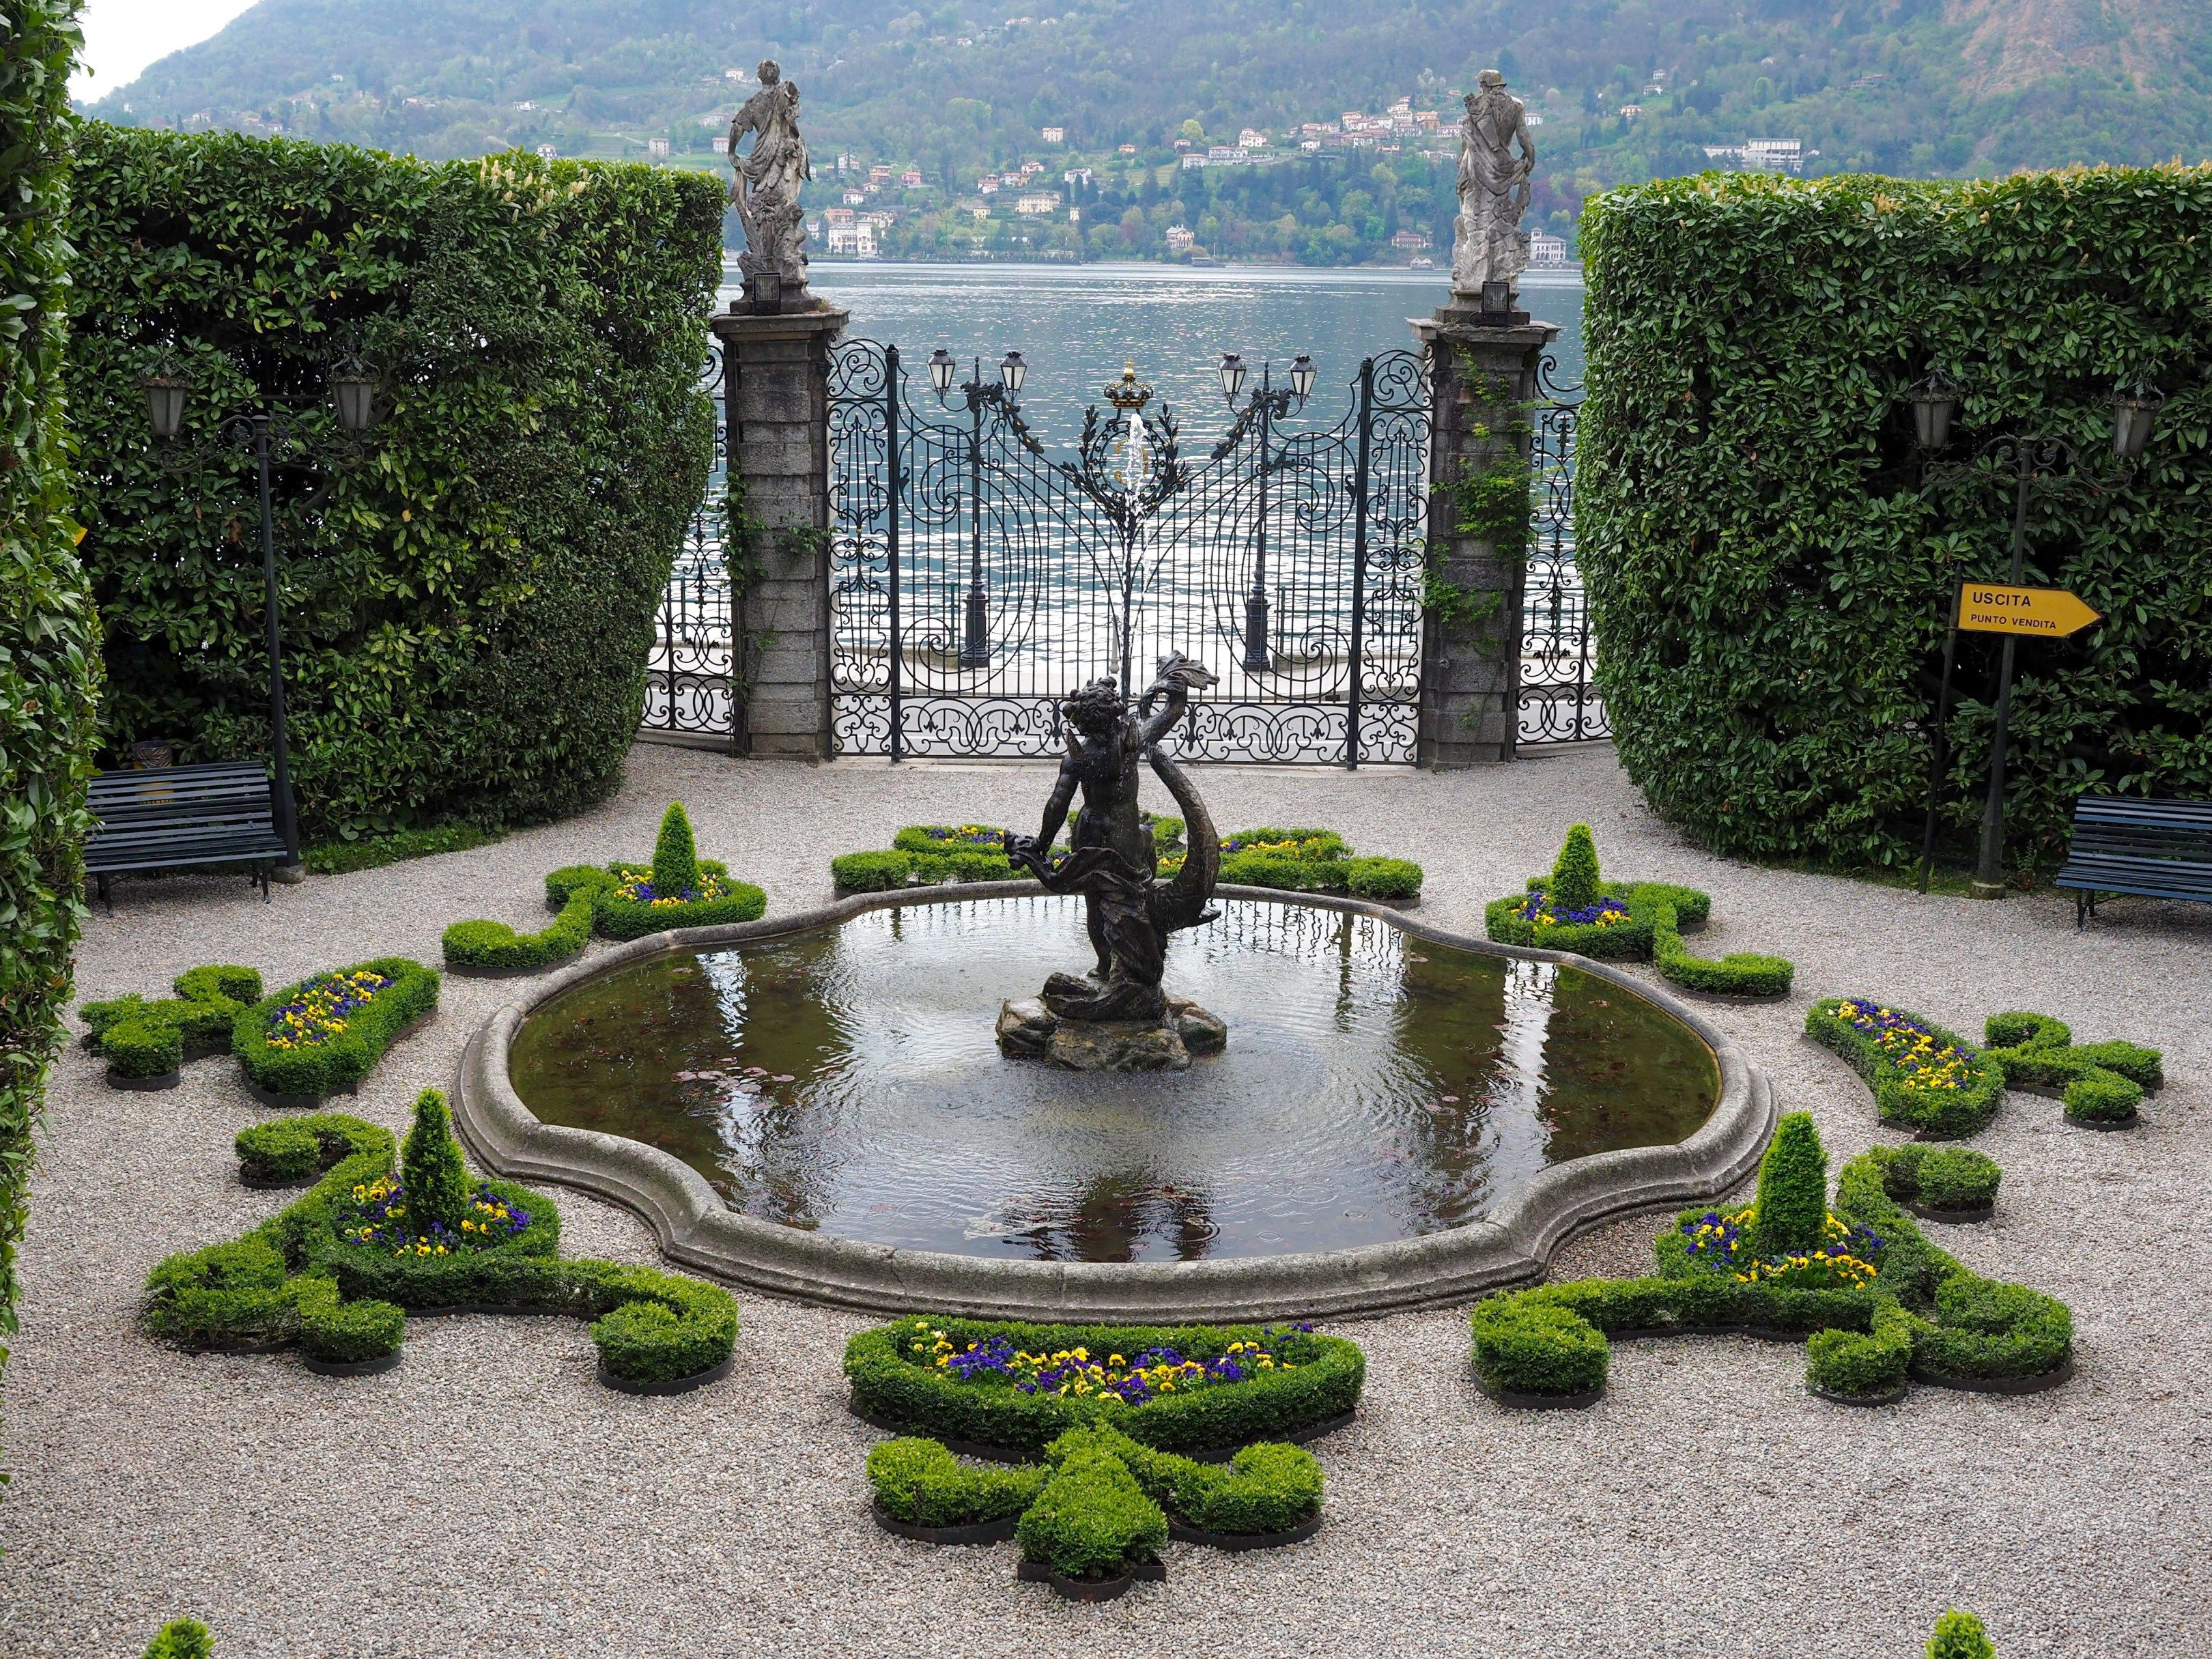 Villa Carlotta Lake Como Travel Guide Lake como, Italy